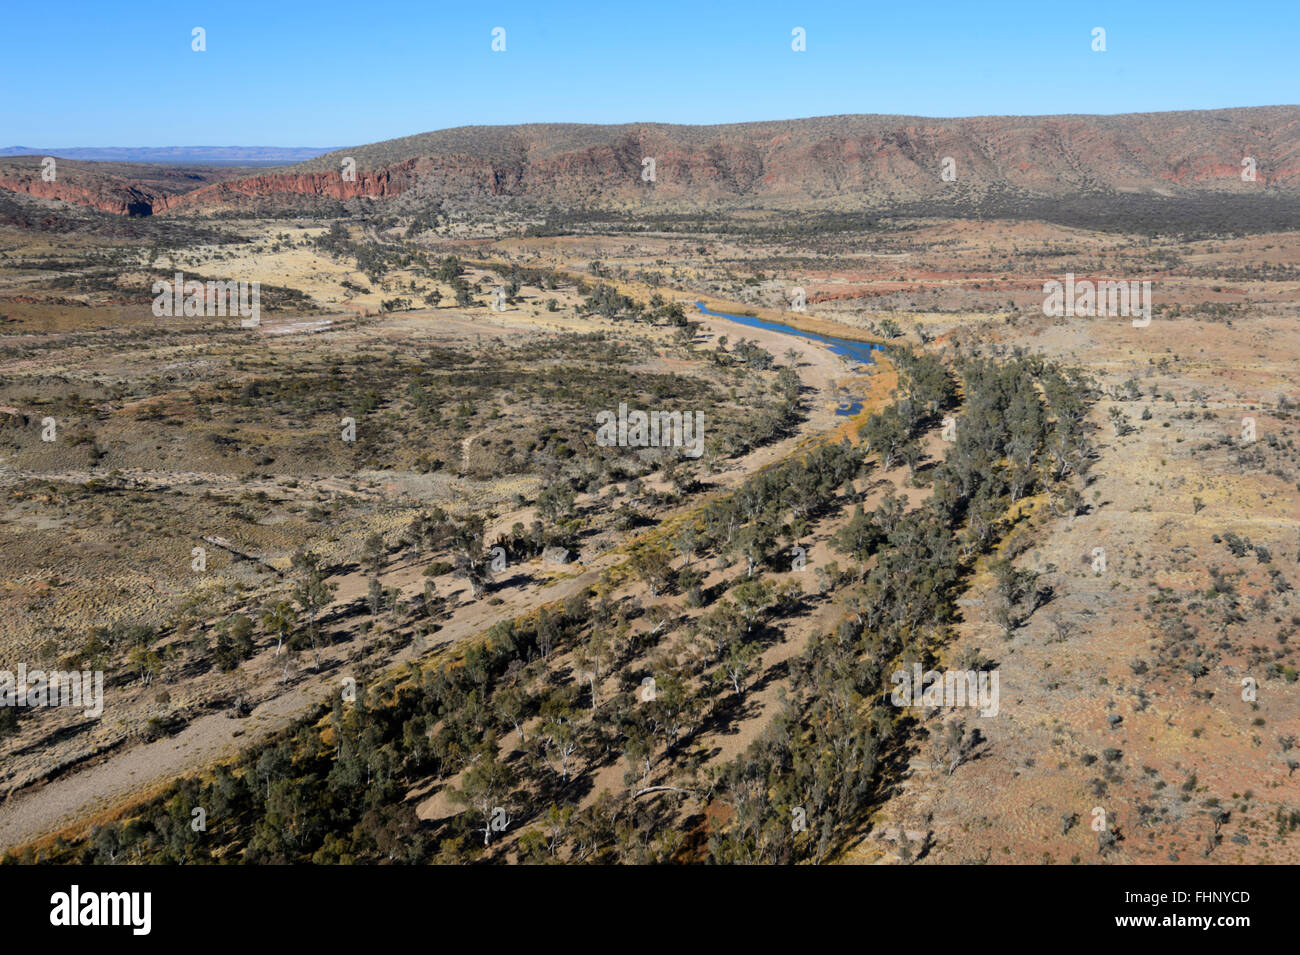 Aerial View of the West MacDonnell Ranges, Northern Territory, Australia - Stock Image